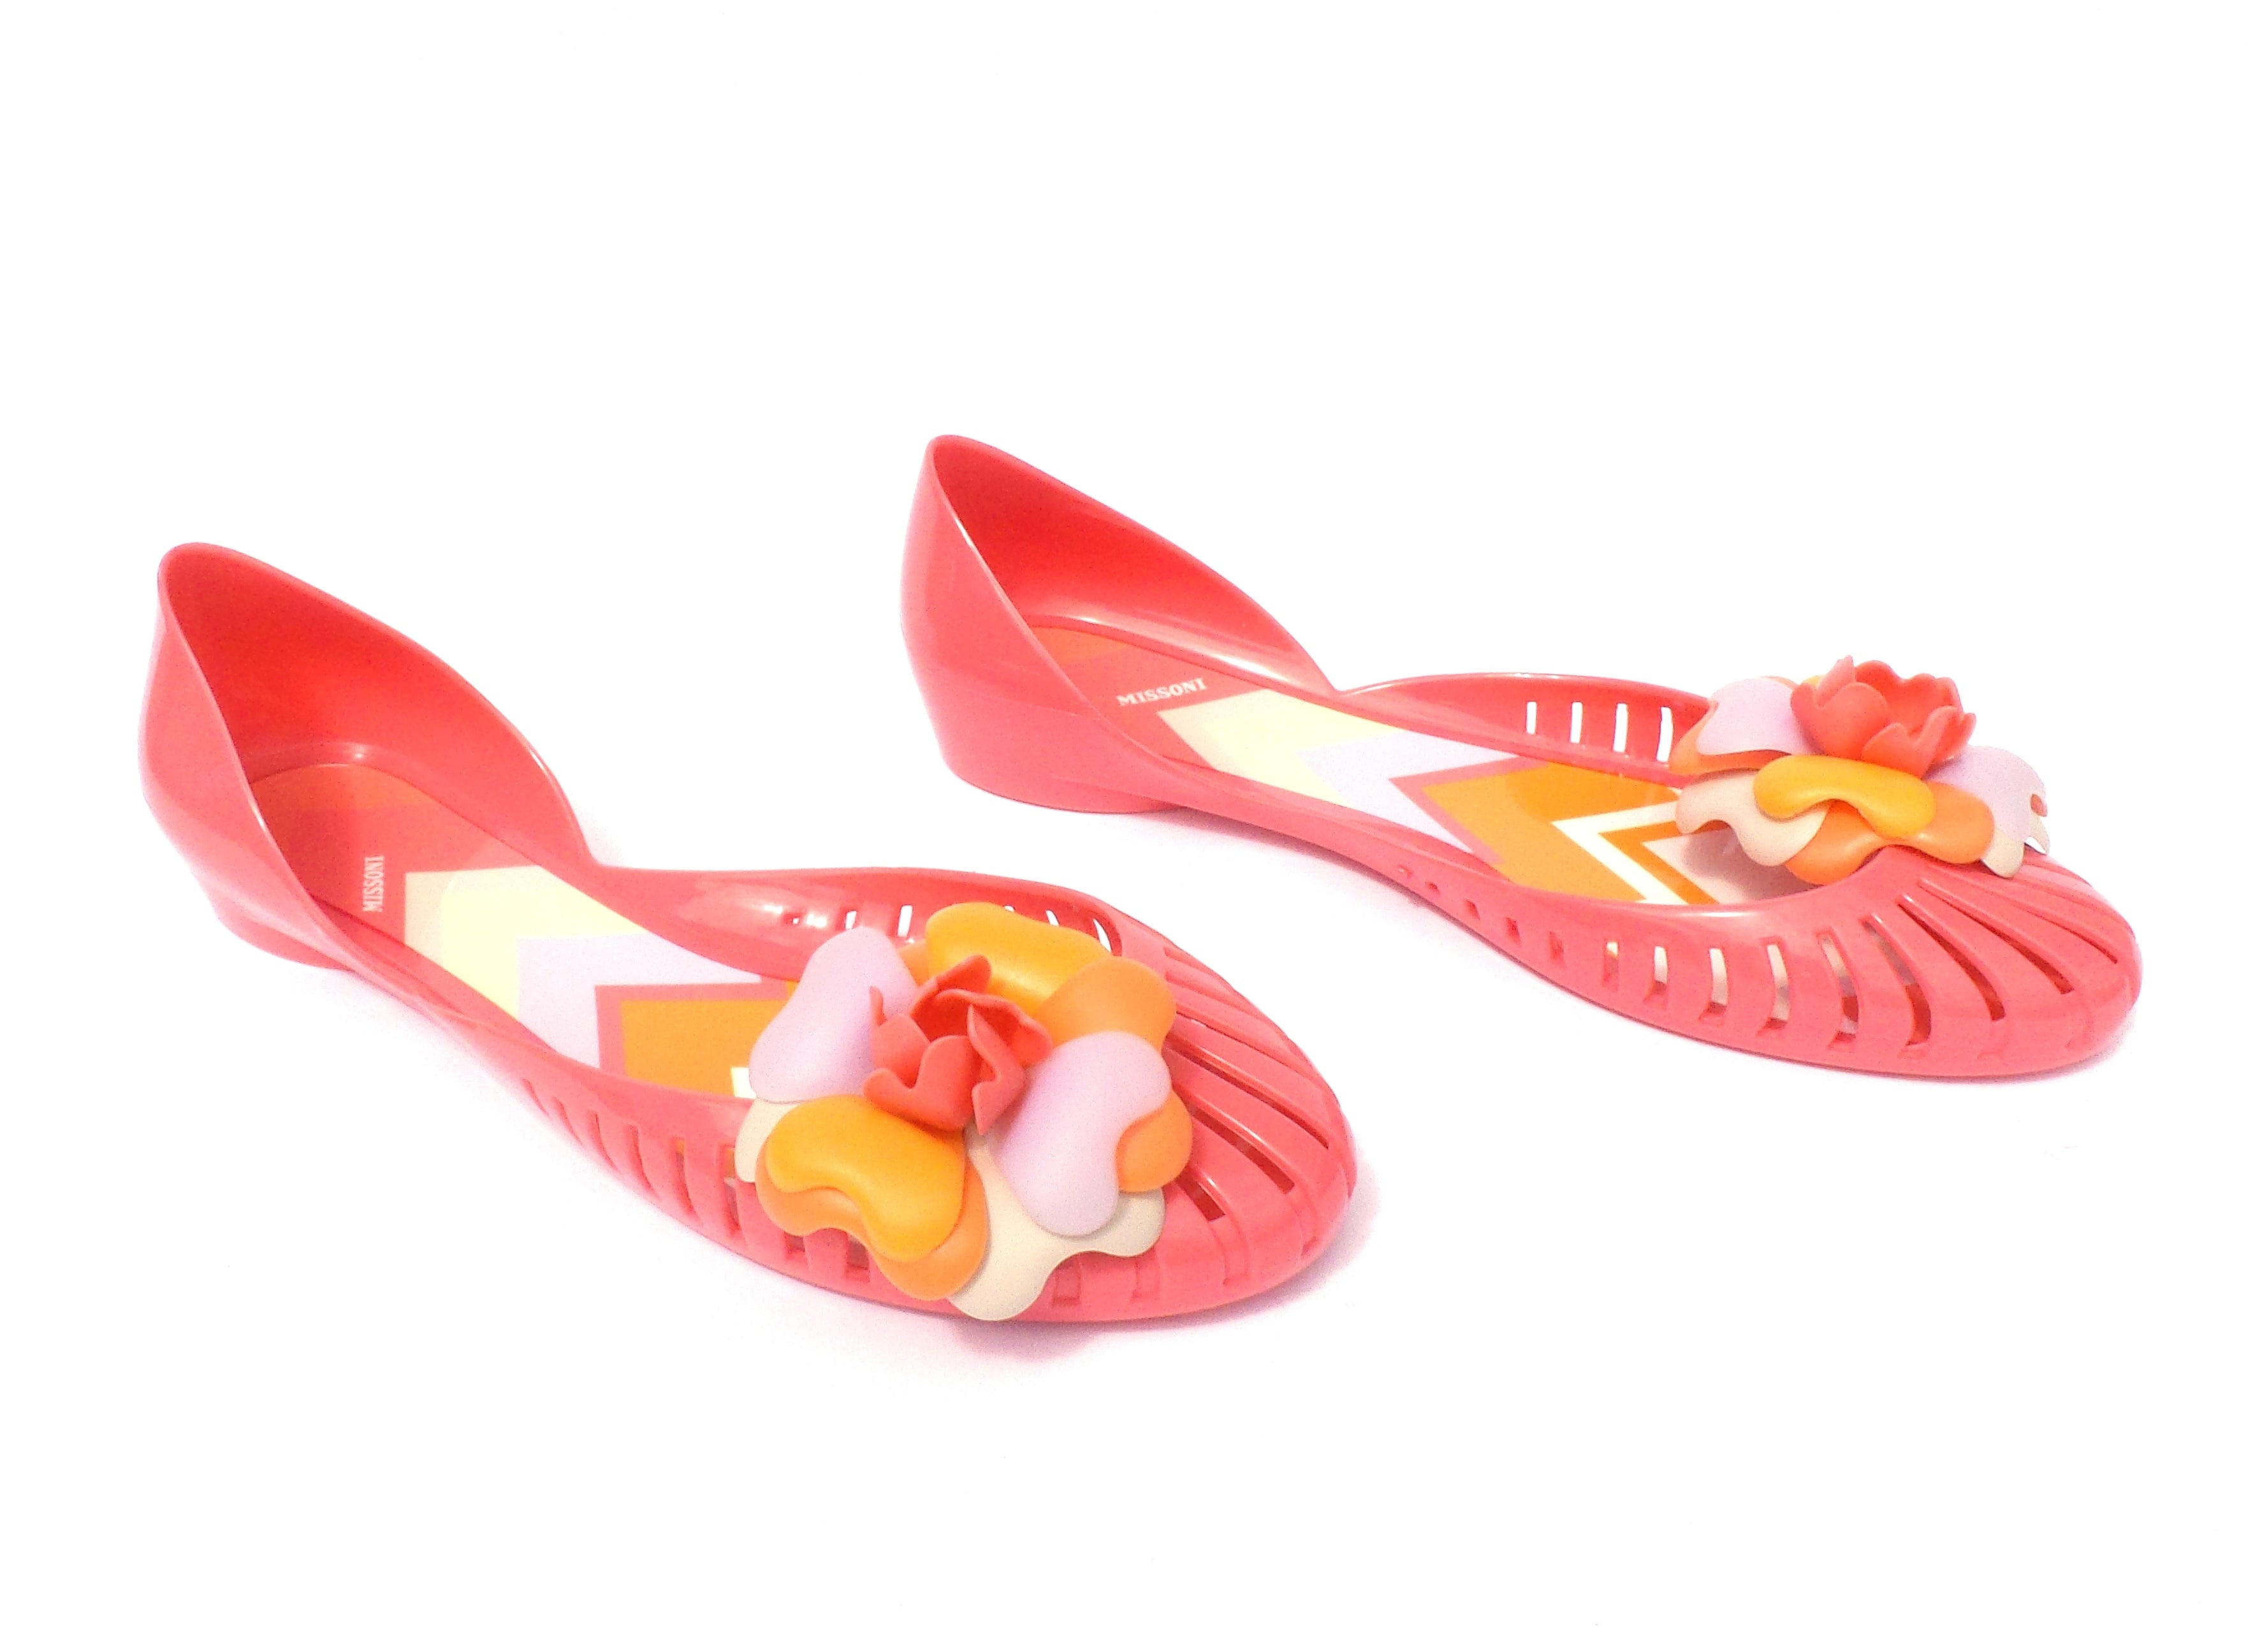 MISSONI Pink Cutout Multi Color Flower Round Toe d'Orsay Jelly Rubber Flats 36